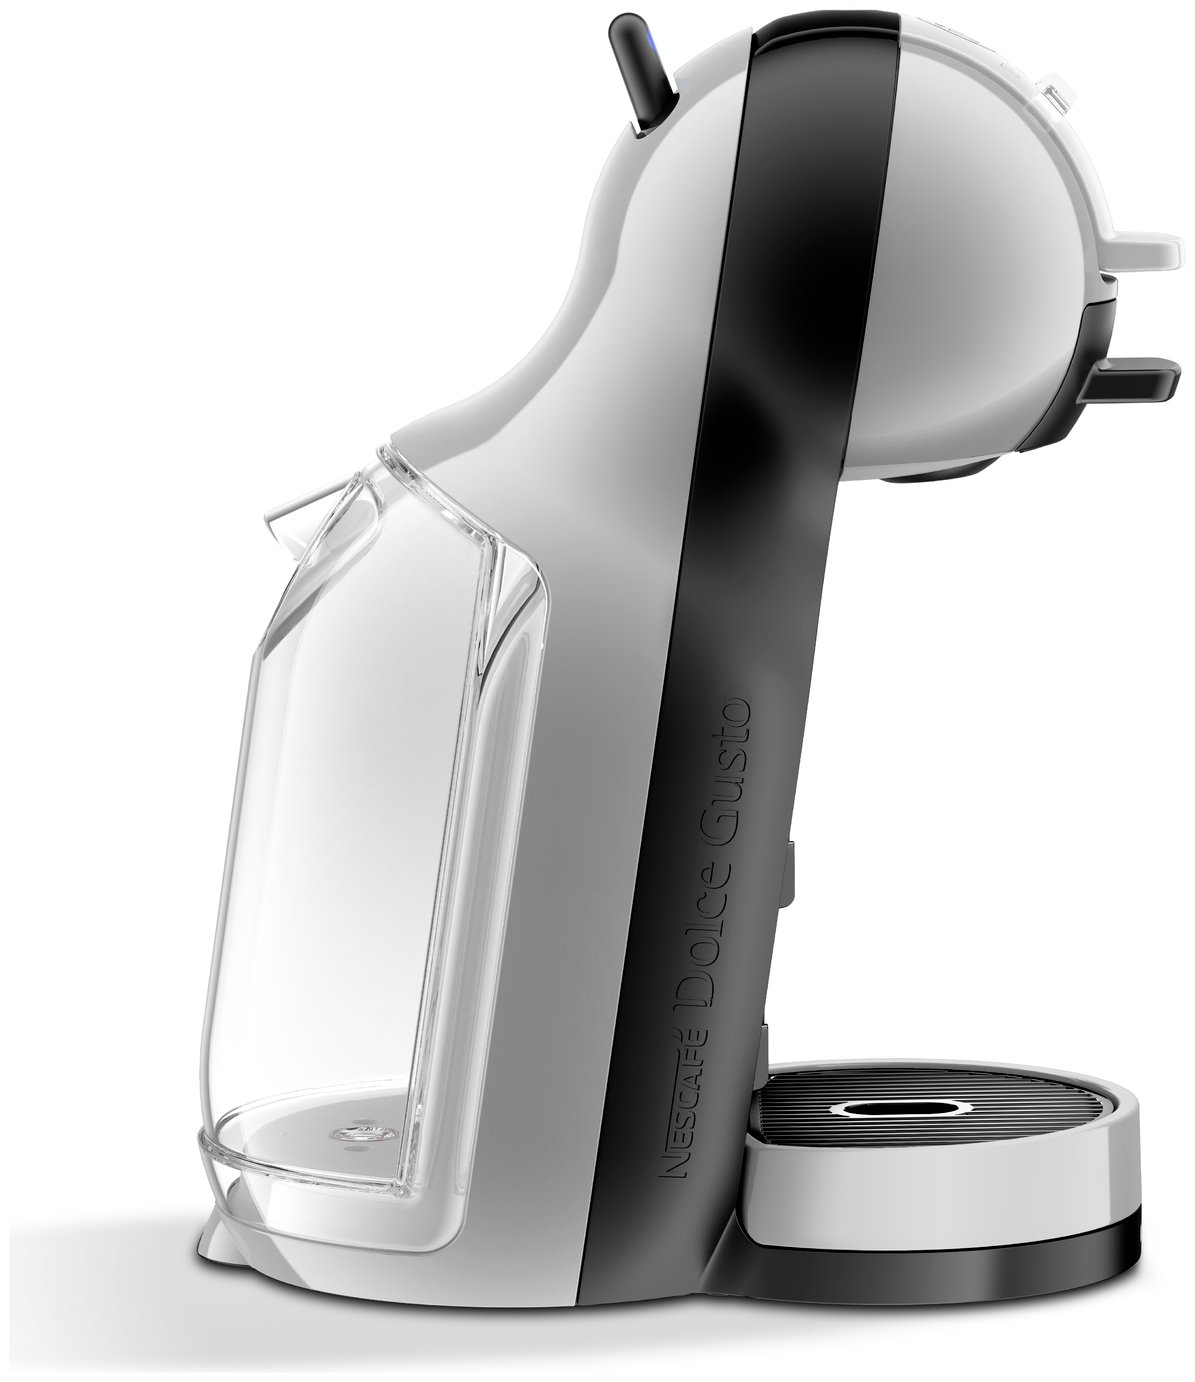 Nescafe Dolce Gusto Krups Mini Me Pod Coffee Machine - Grey